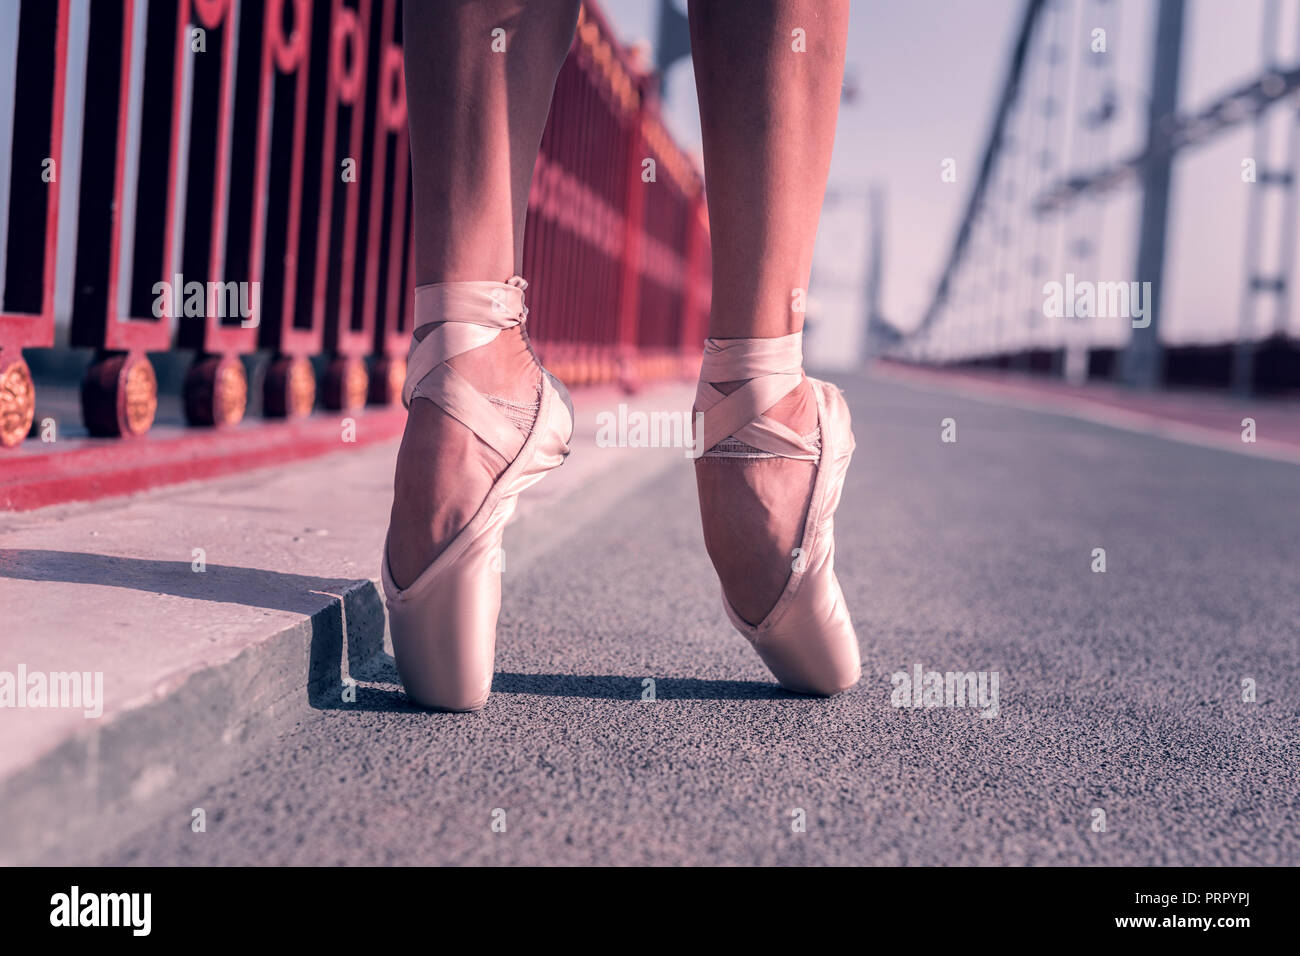 Close up of pointe shoes being worn by ballerina - Stock Image